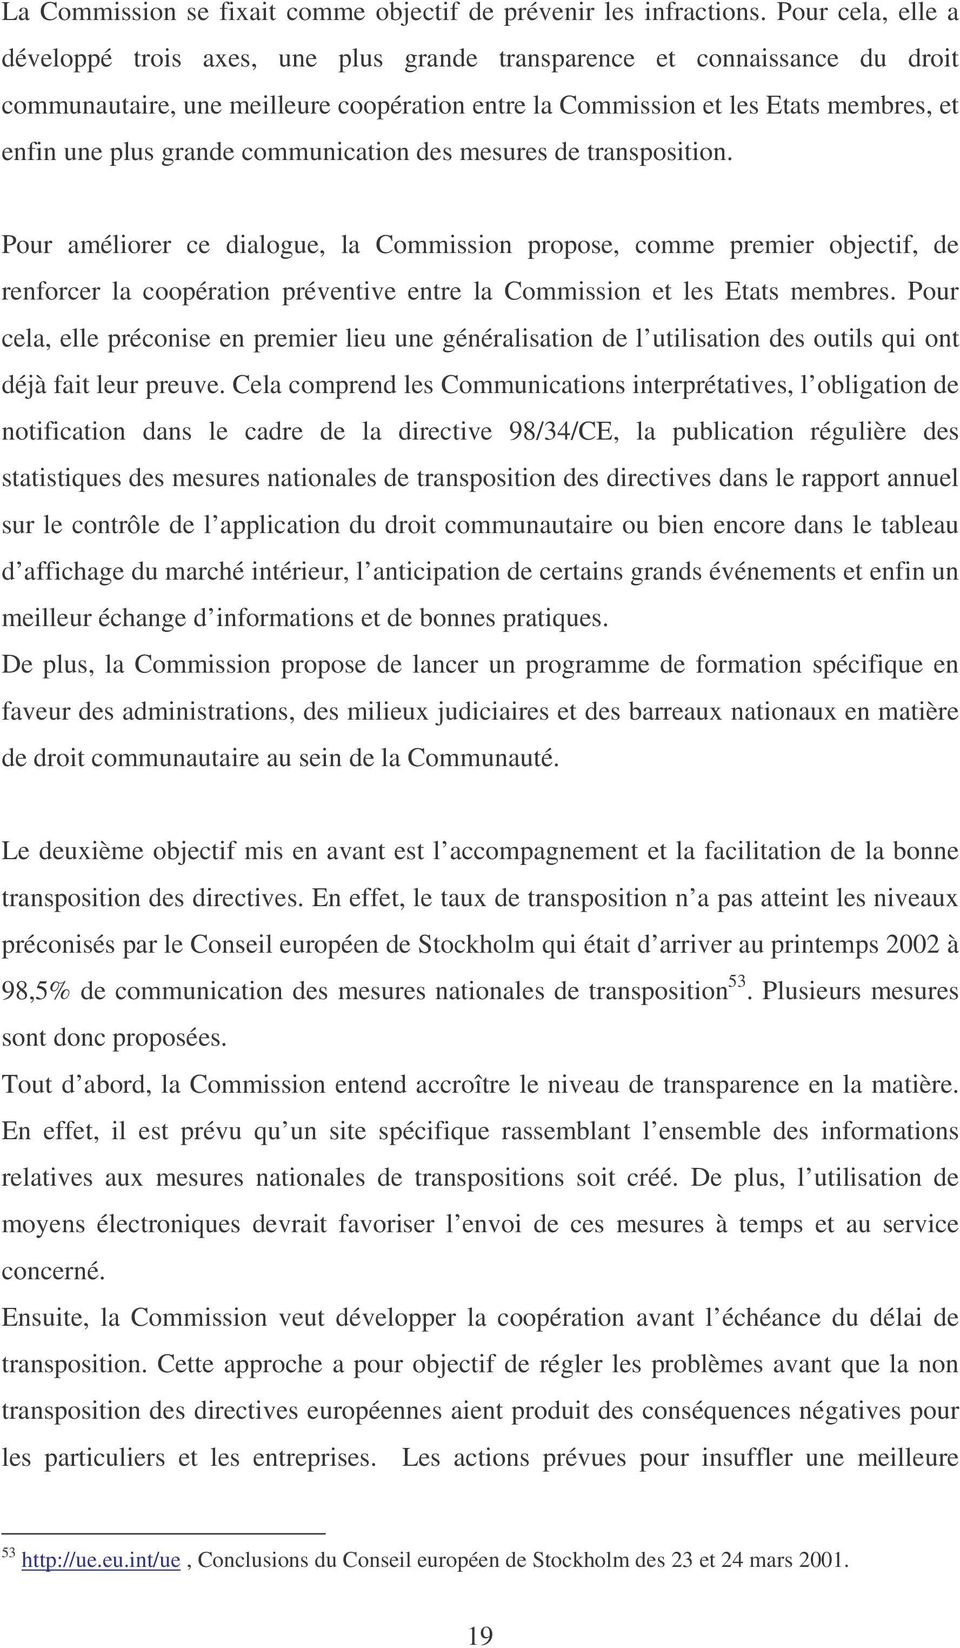 grande communication des mesures de transposition.